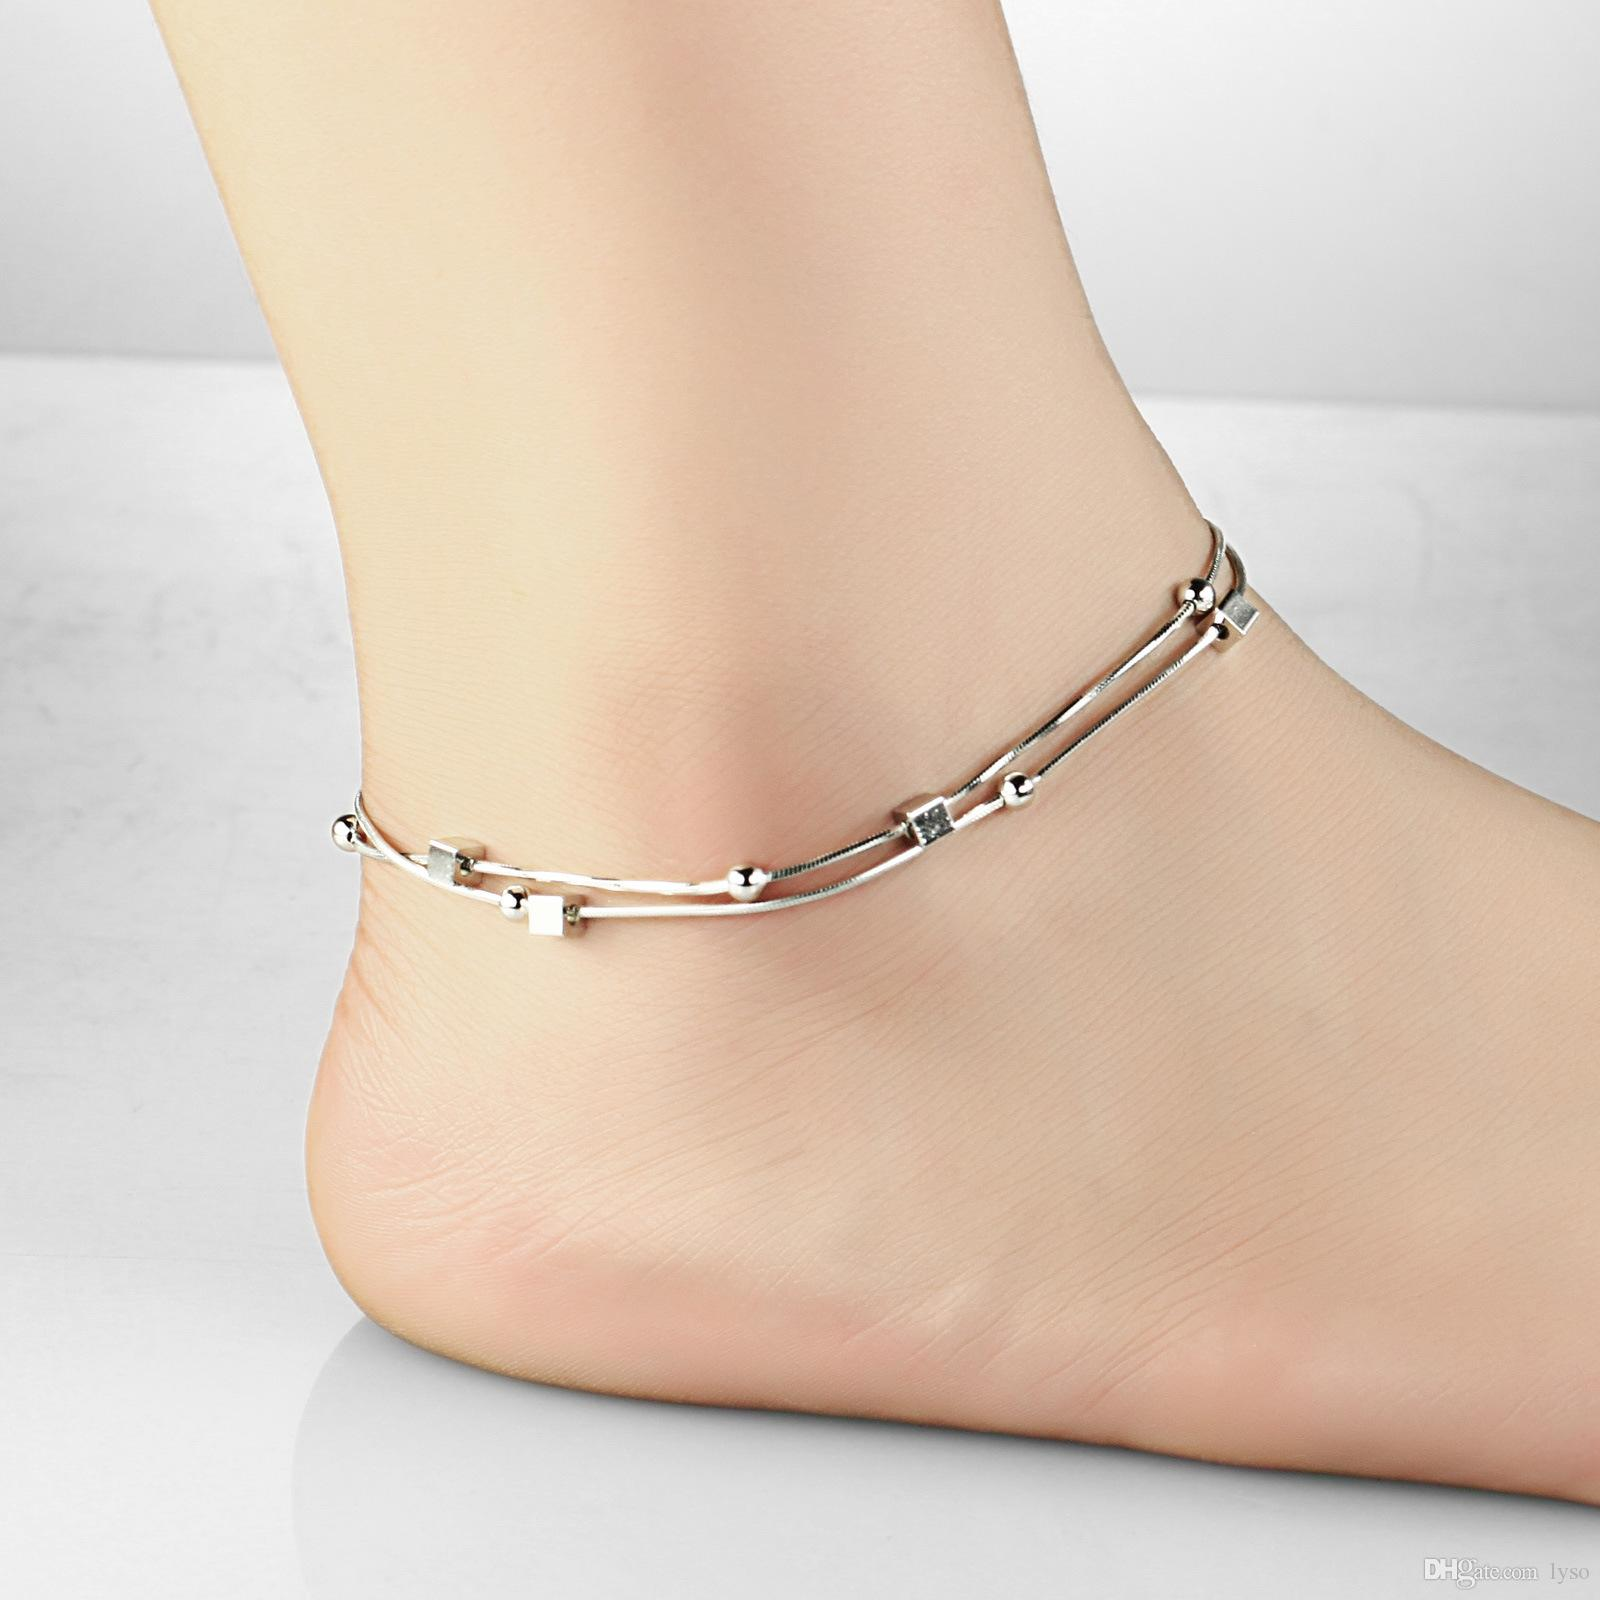 new anklet gift color anklets ankle girls order accessories sale item chain gold in bracelet jewelry platier for arrival aesthetic white min fashion hot from